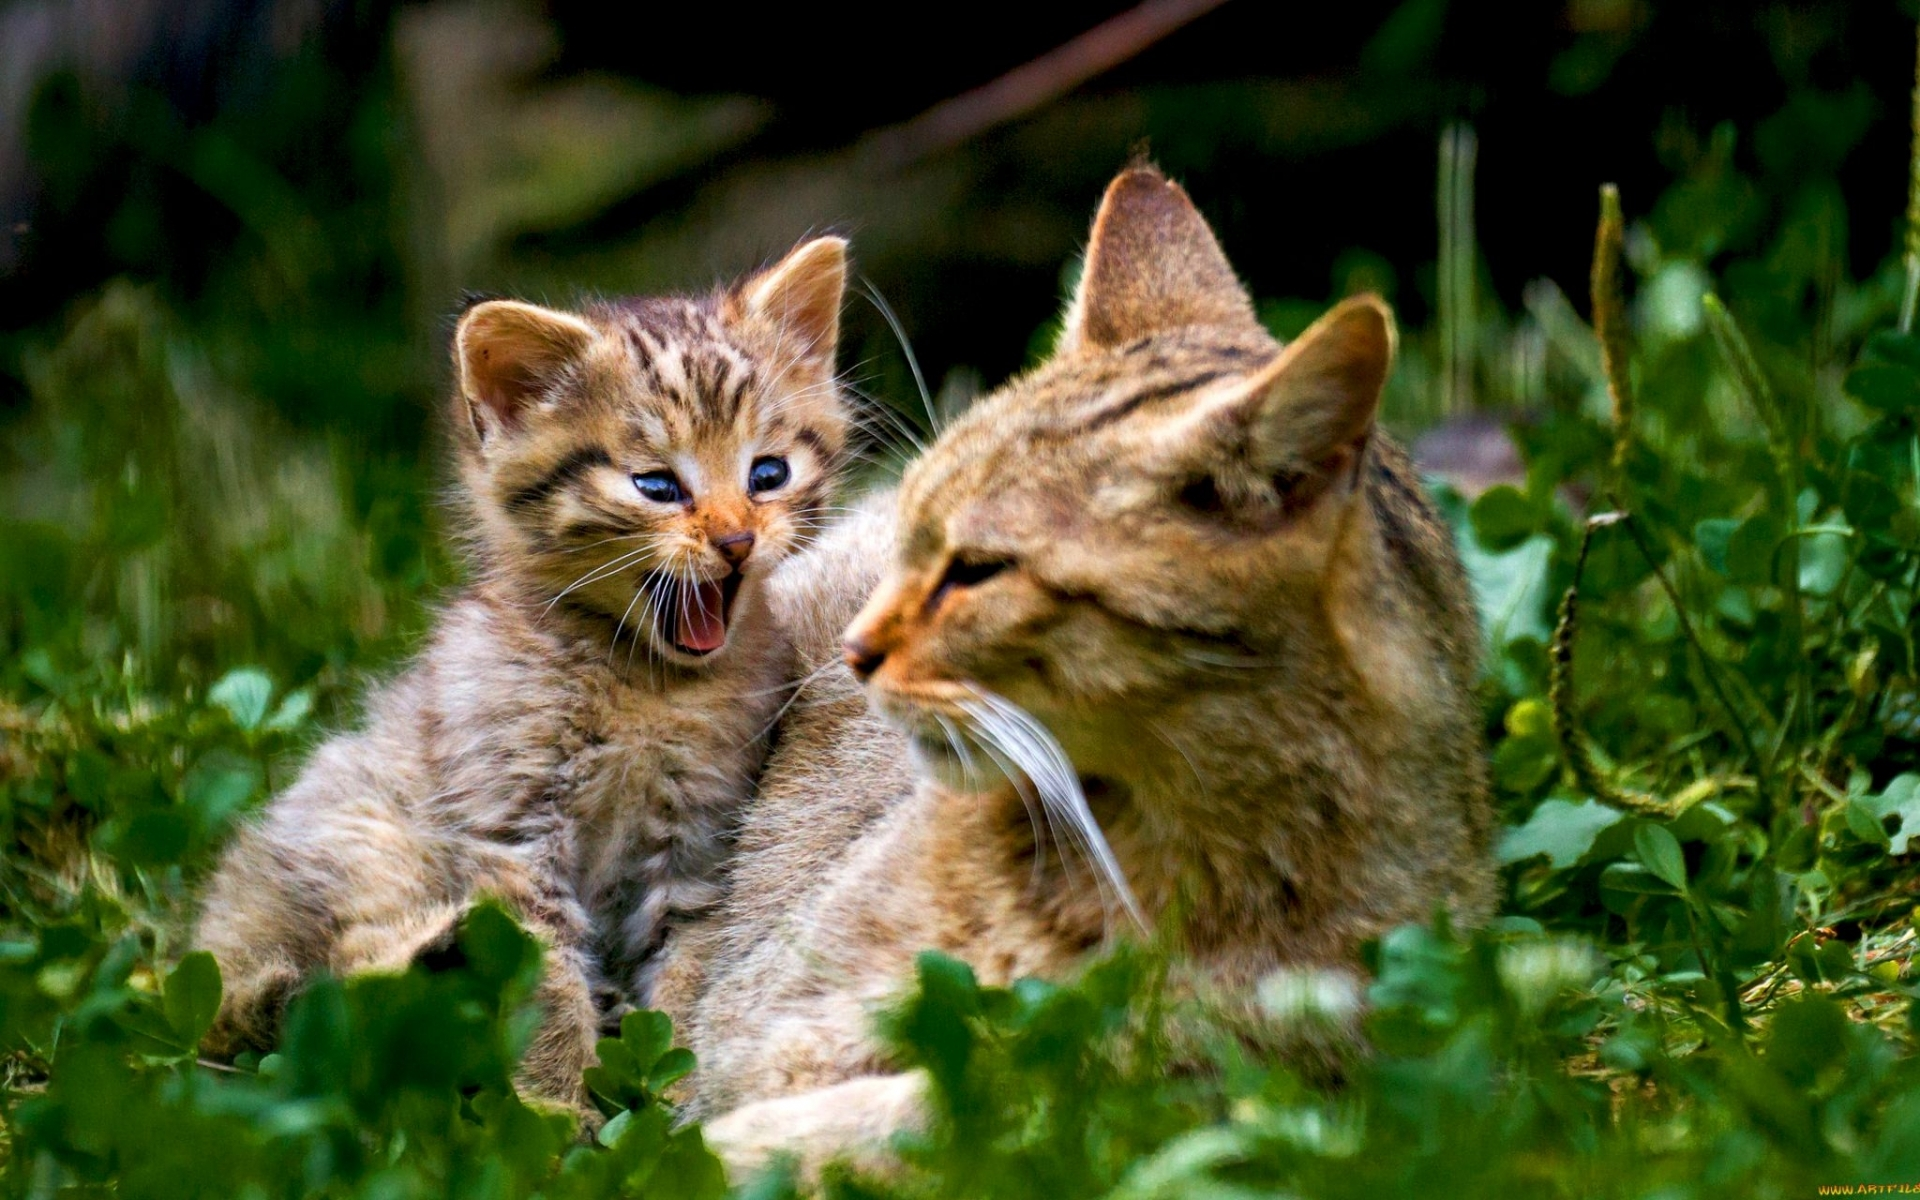 48387 download wallpaper Animals, Cats screensavers and pictures for free